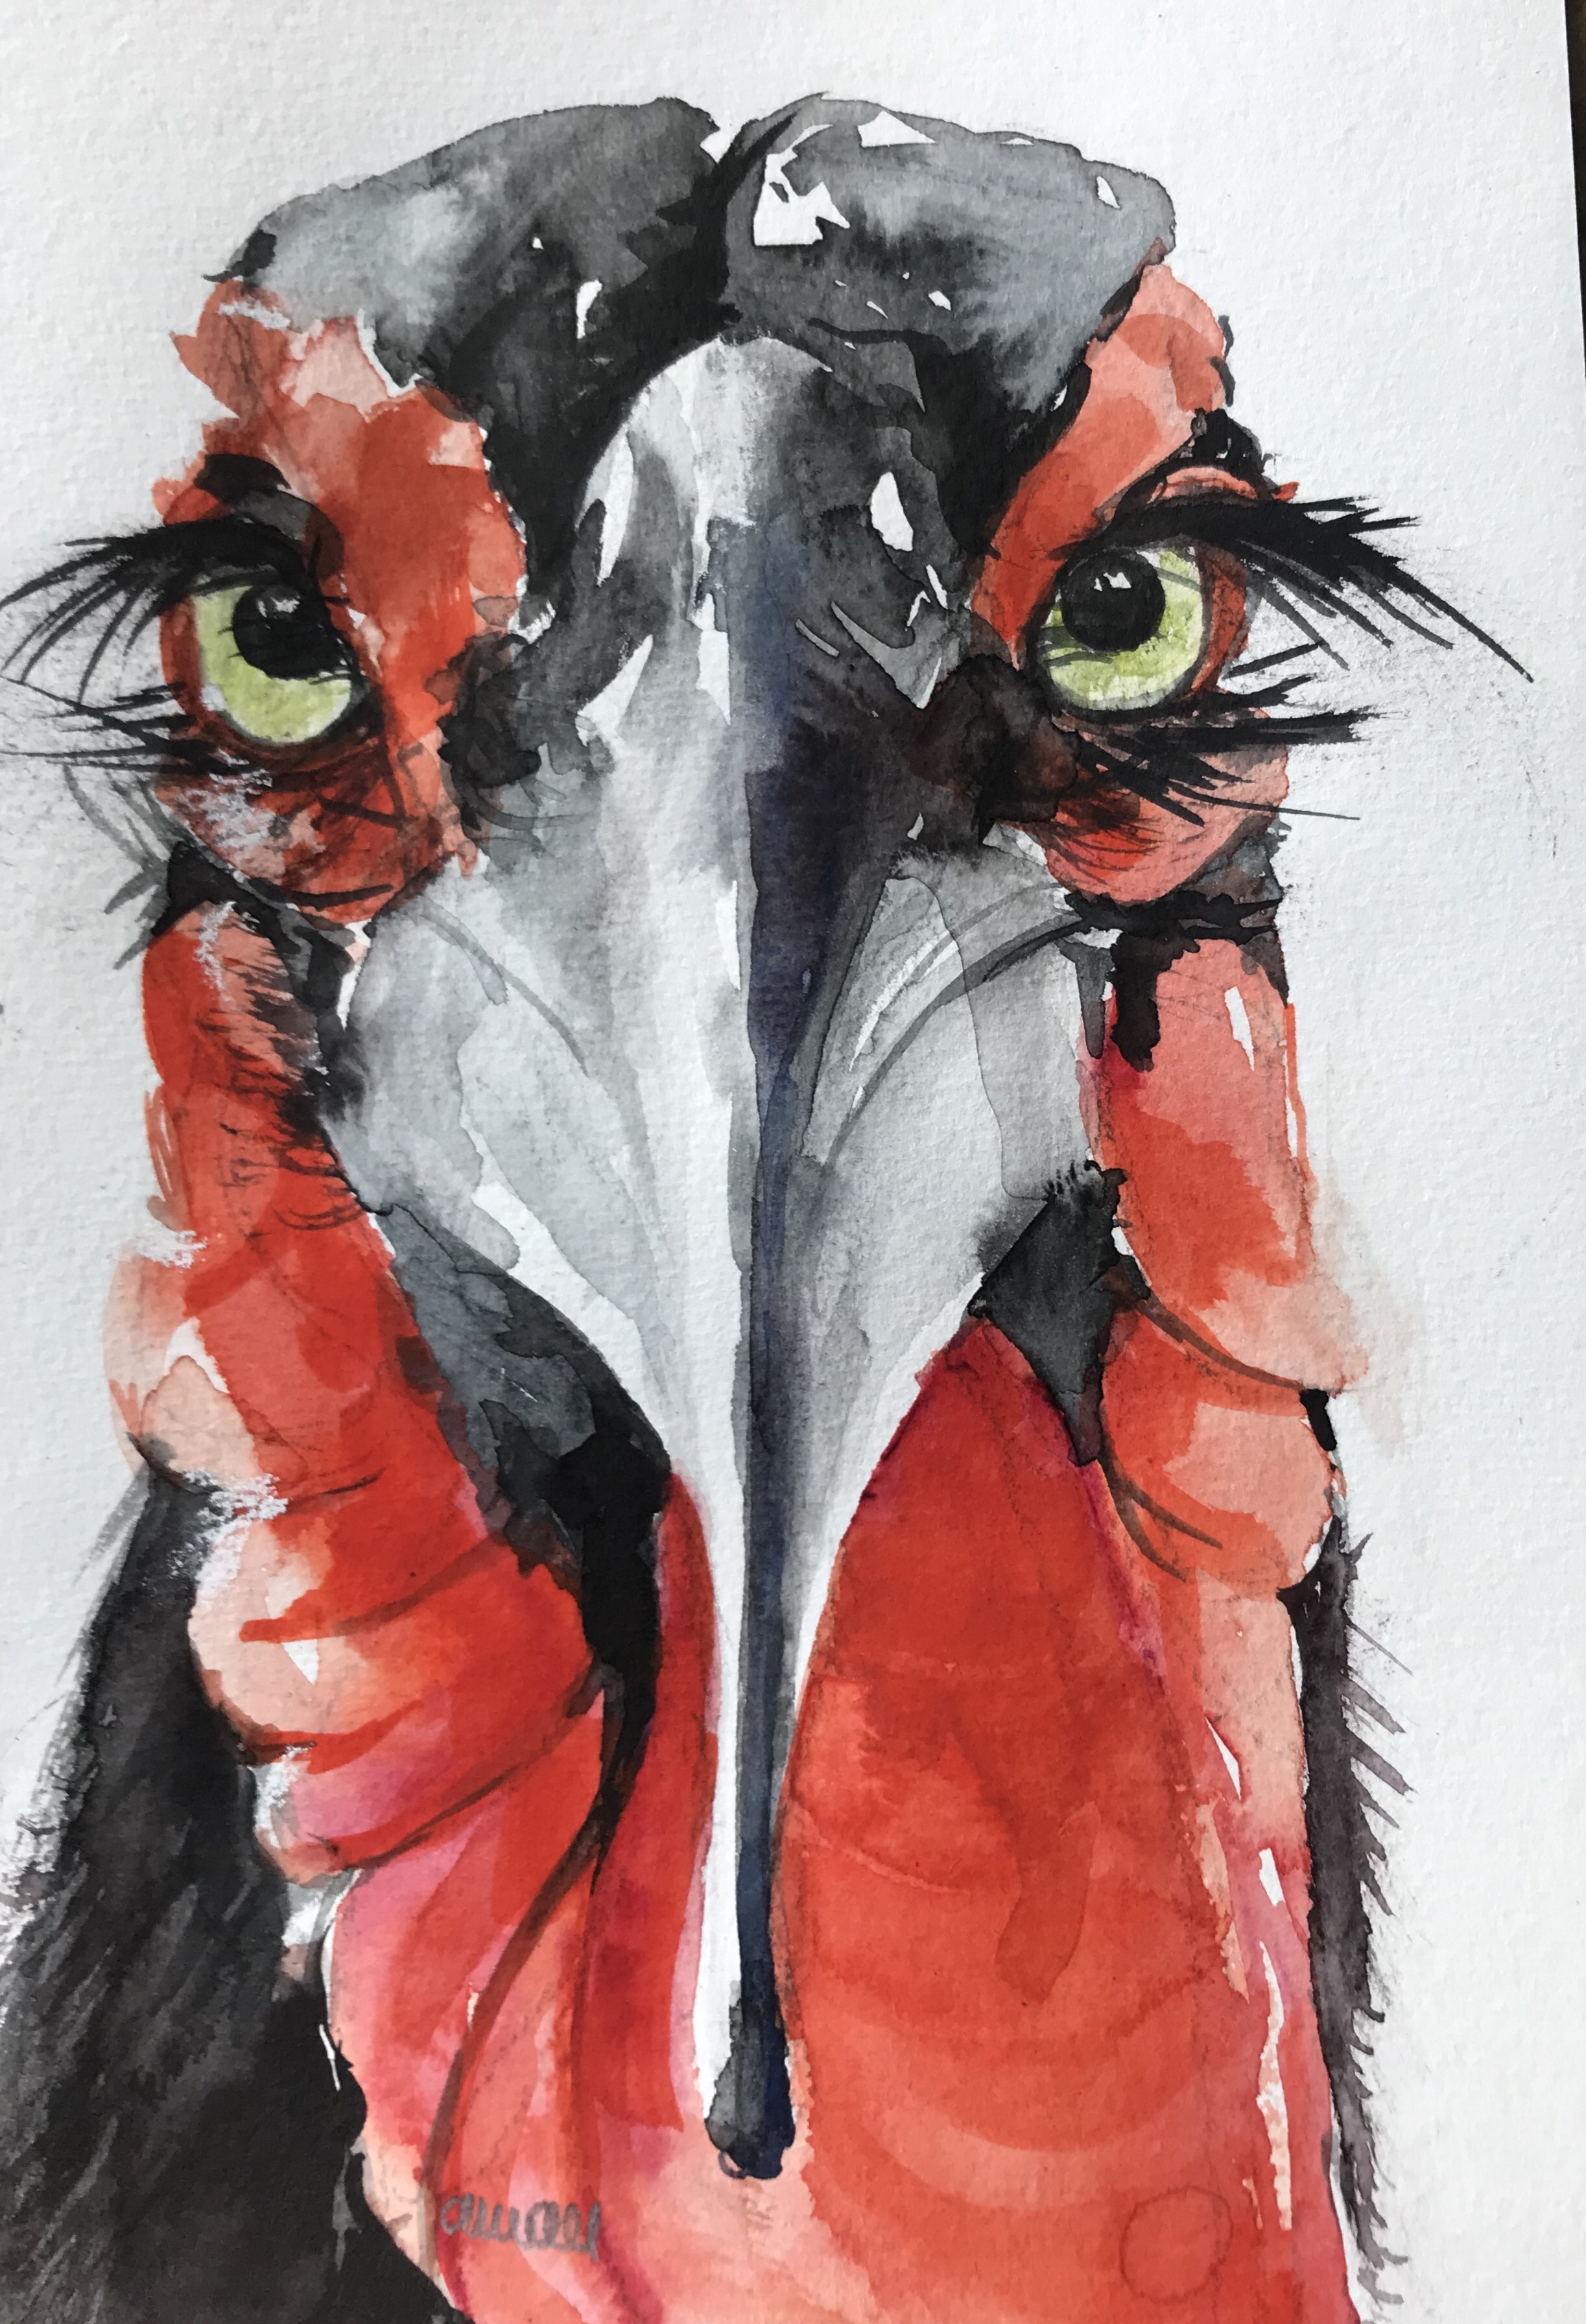 182- Southern Ground Hornbill 14x20cm